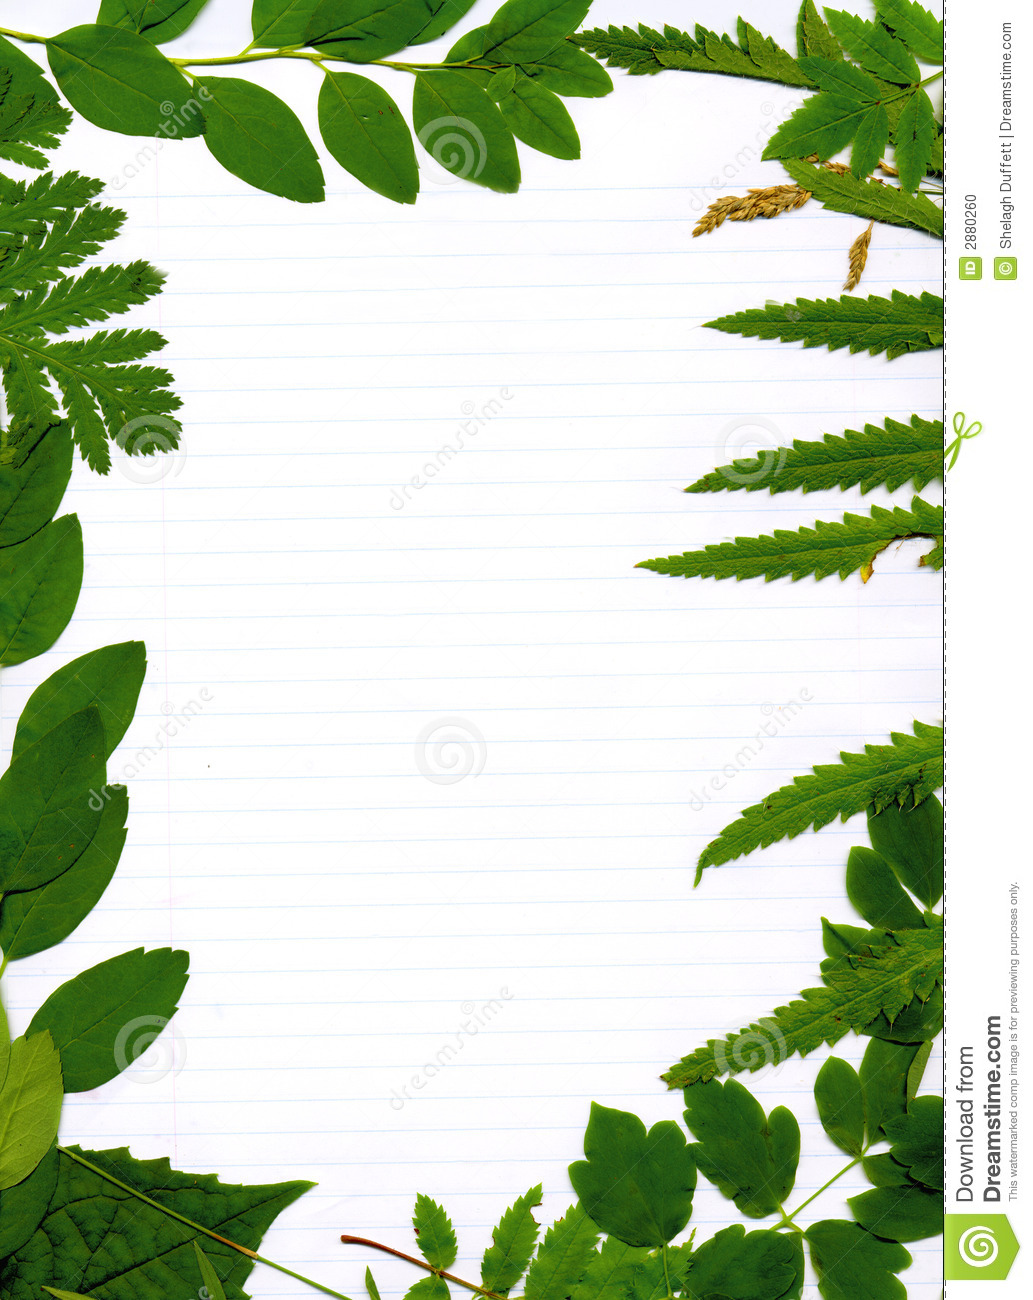 Leafy green natural border on lined paper framing blank center.